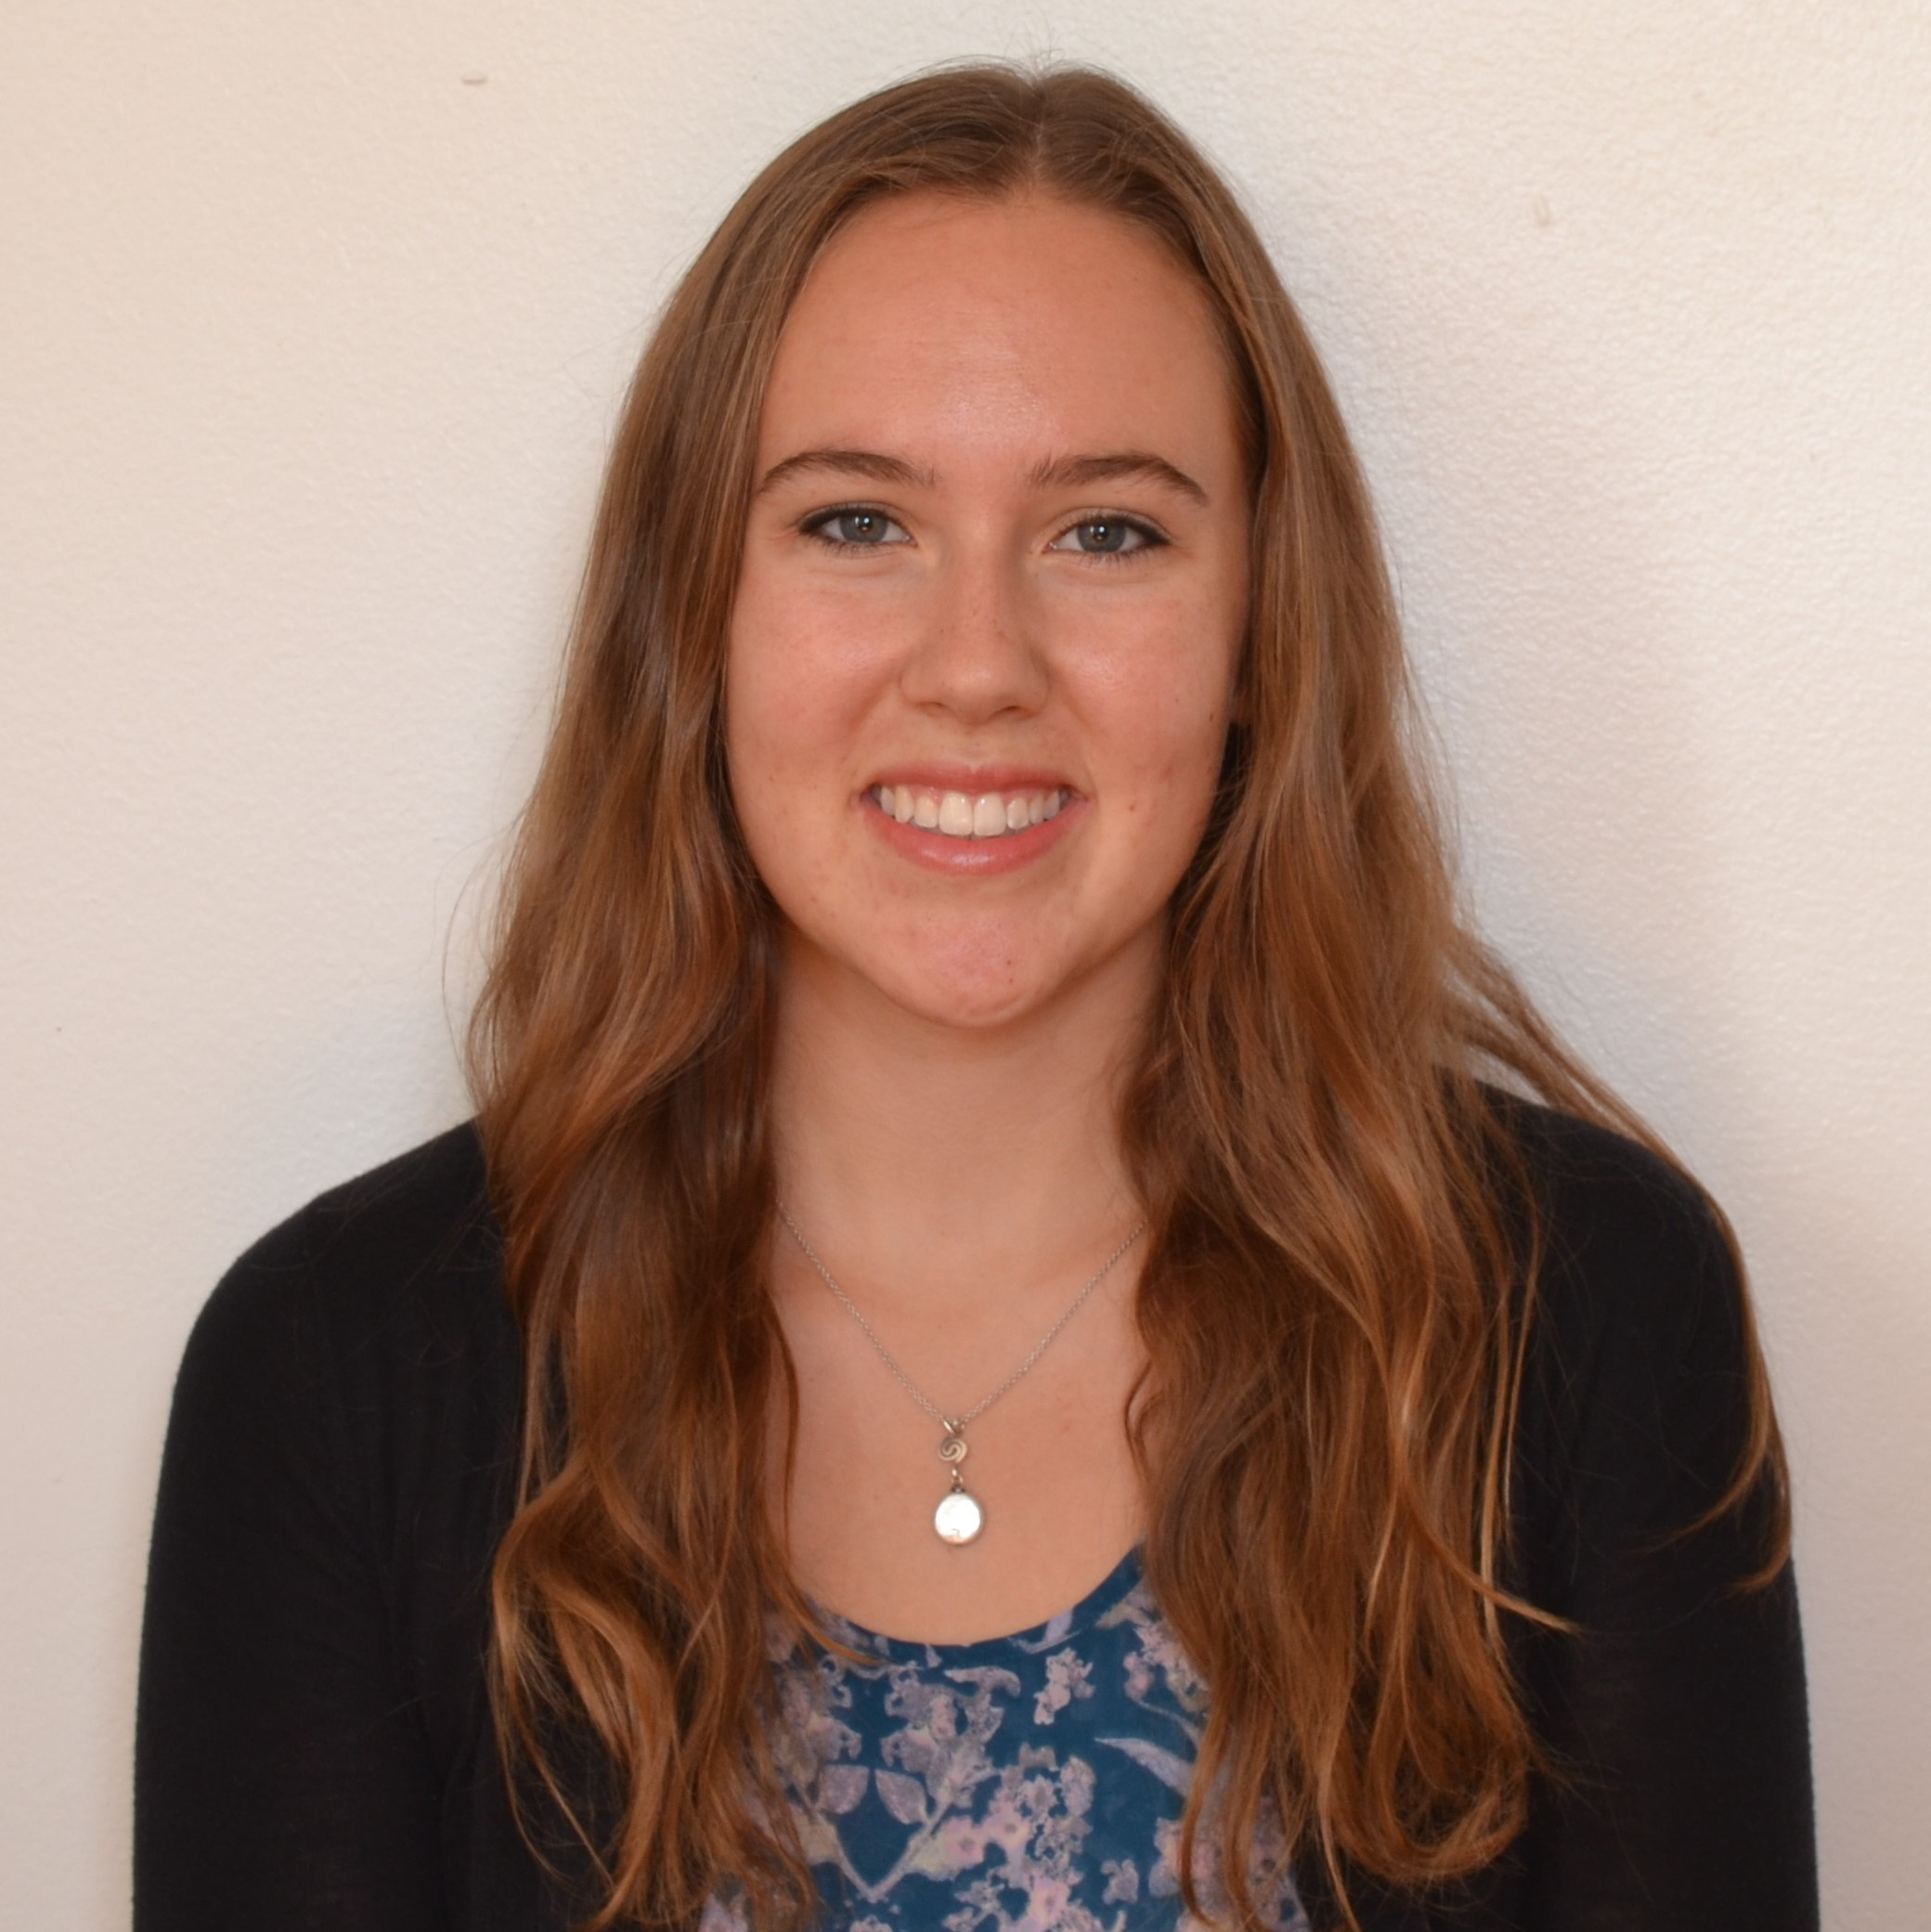 Johanna Rayl - Class of 2018Background: BA Environmental Analysis (Pomona)Faculty Supervisor: Michael GreenstonePlacement: PhD Economics, Chicago | NSF Awardee